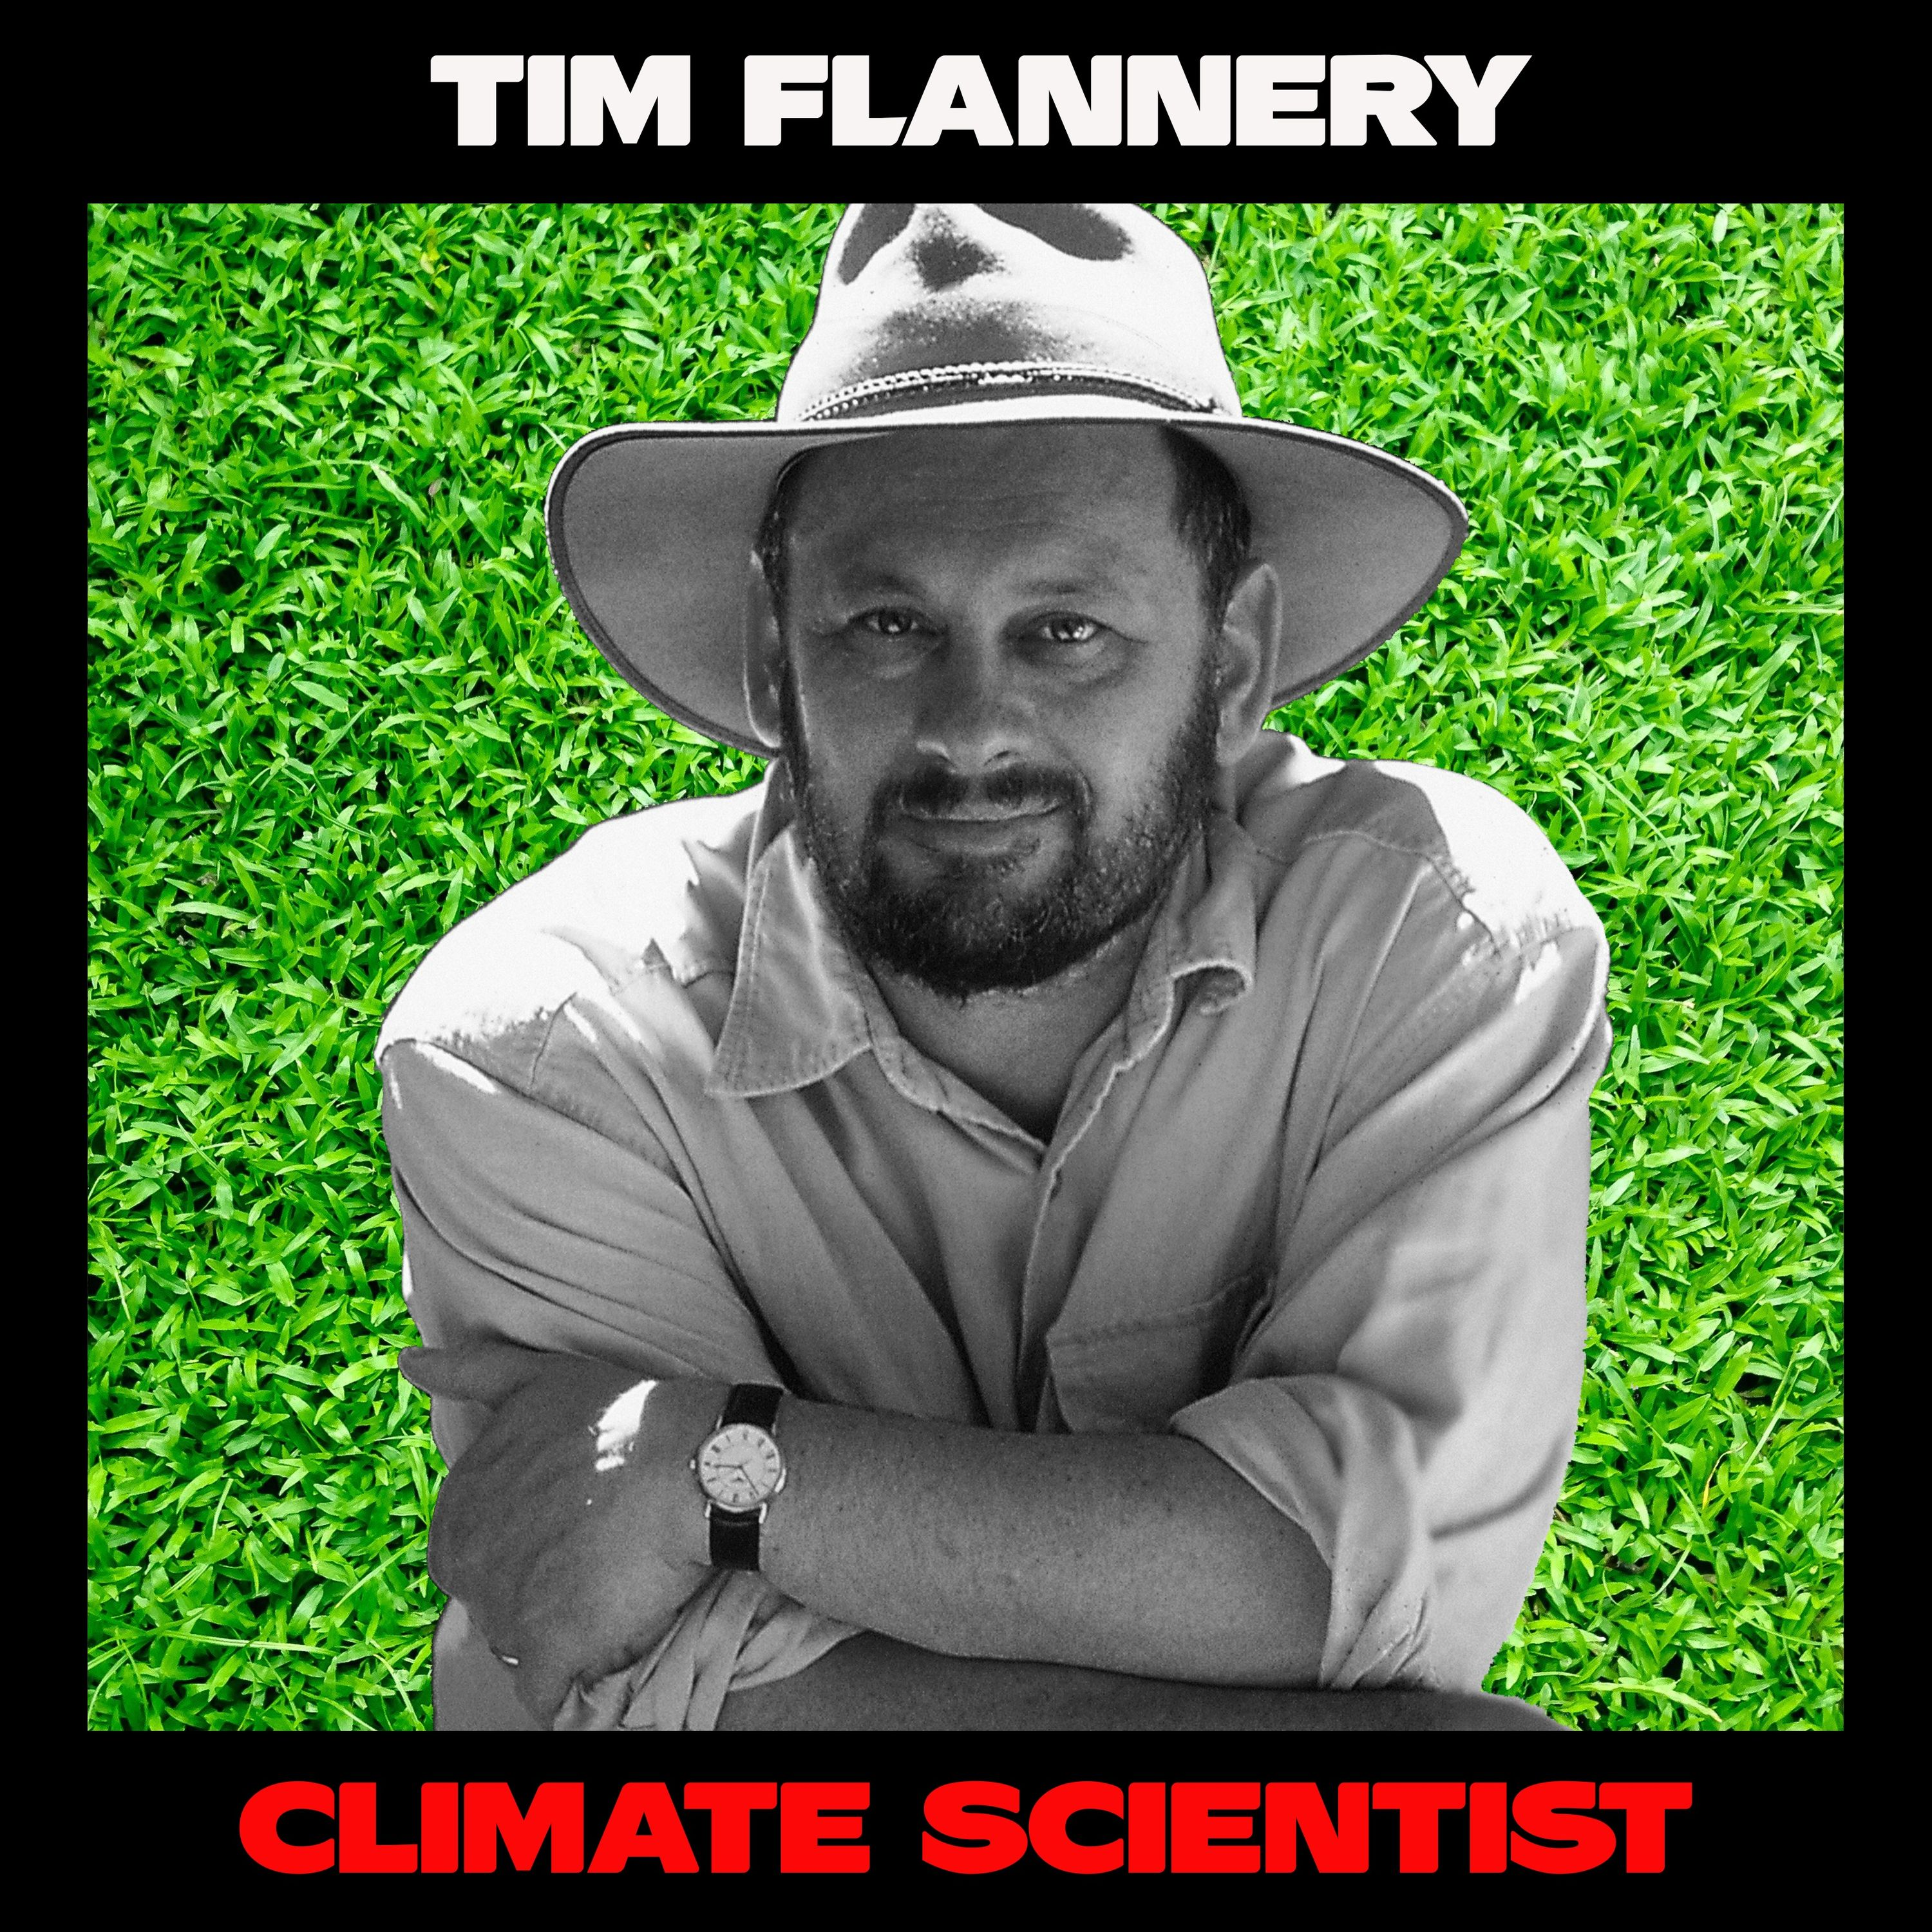 Tim Flannery: The Need for Drawdown